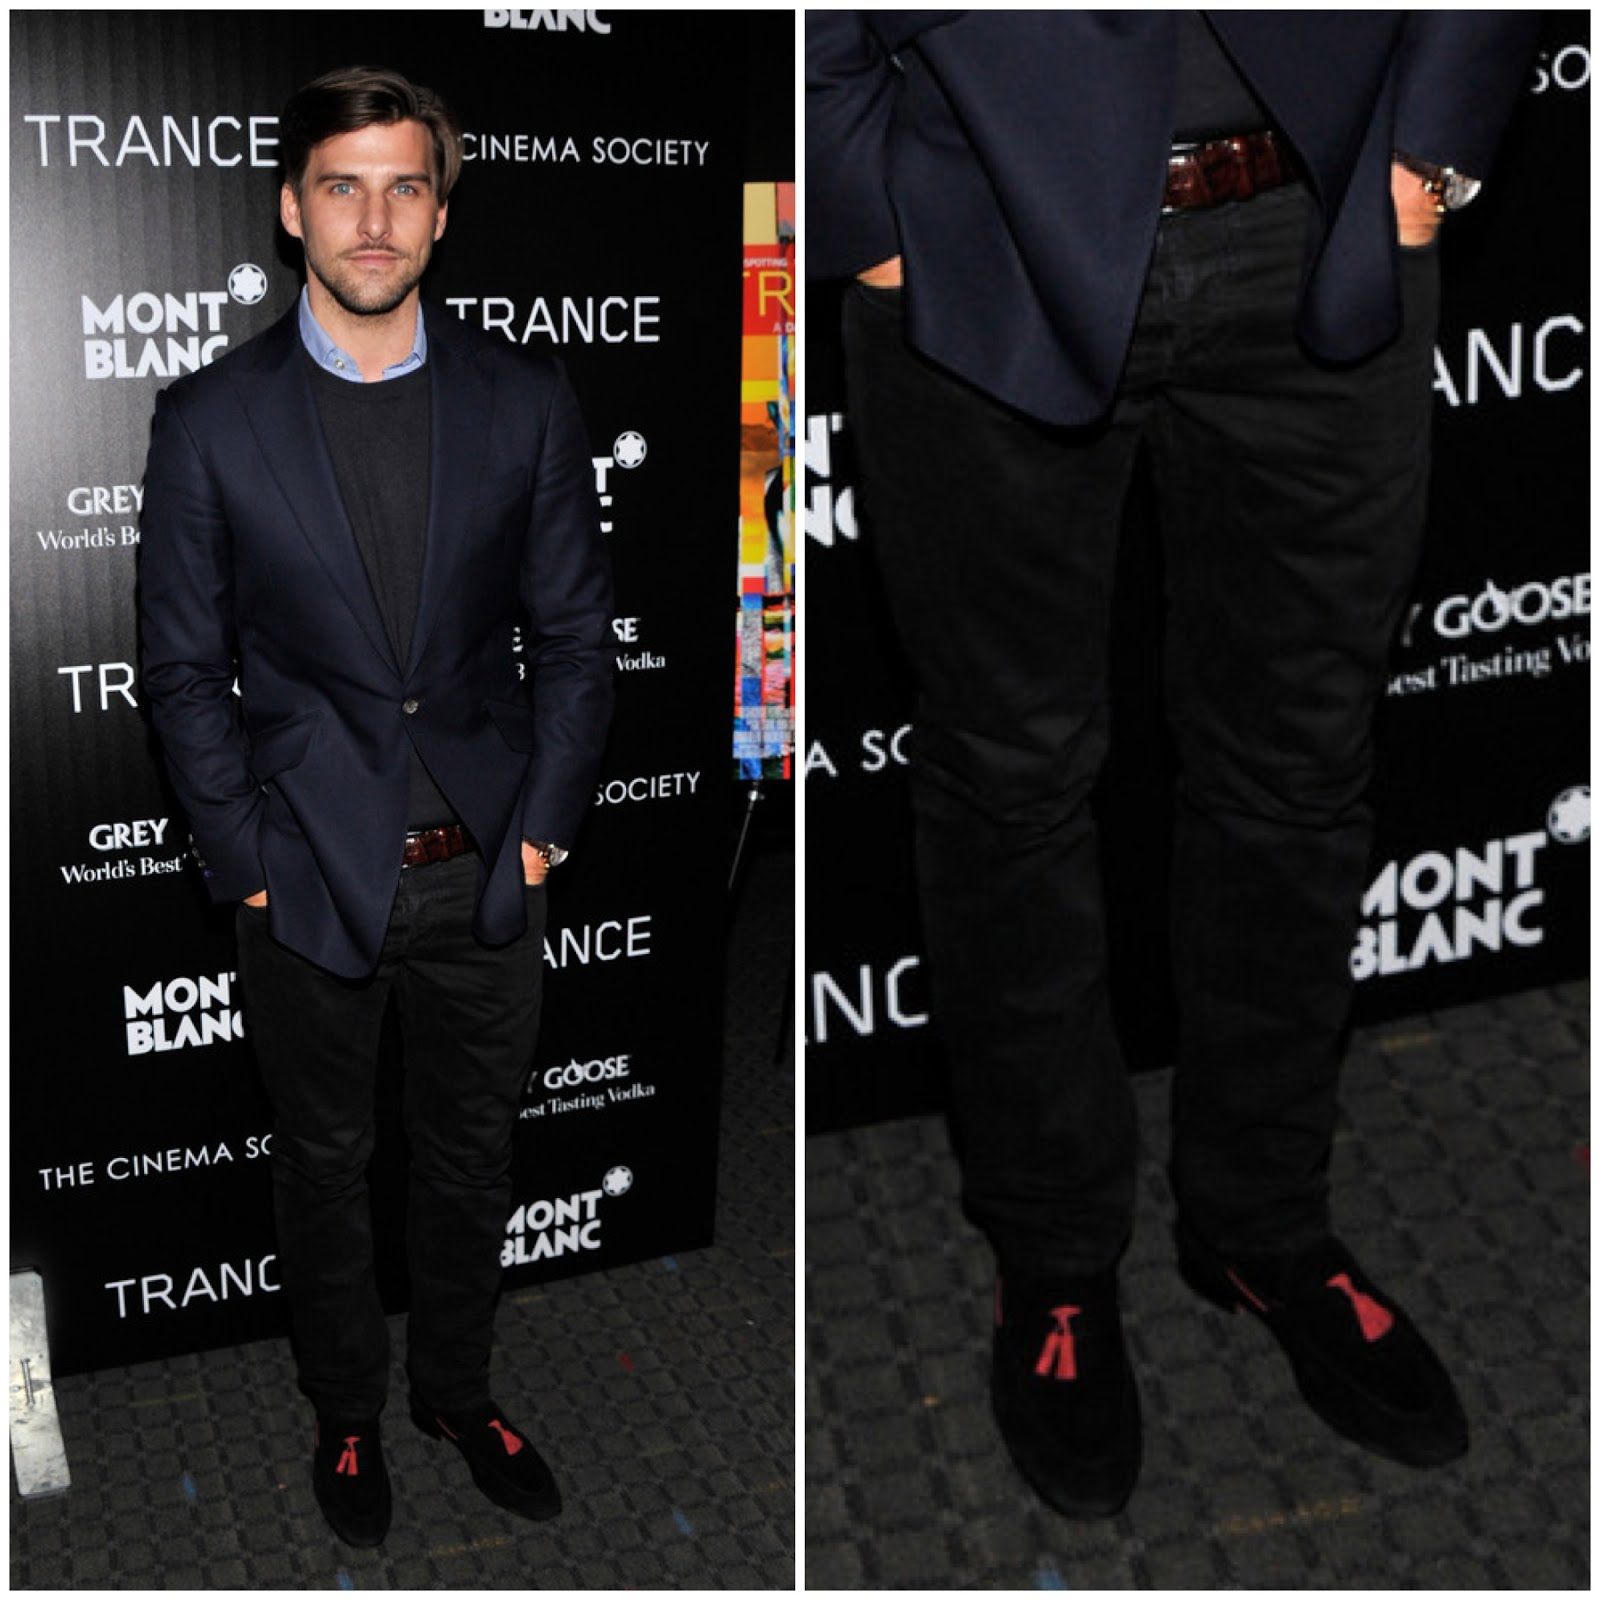 00O00 Menswear Blog Johannes Huebl's Scarosso Mezzano brown suede orange tasselled shoes - premiere of Fox Searchlight Pictures Trance hosted by The Cinema Society & Montblanc at SVA Theater on April 2, 2013 in New York City